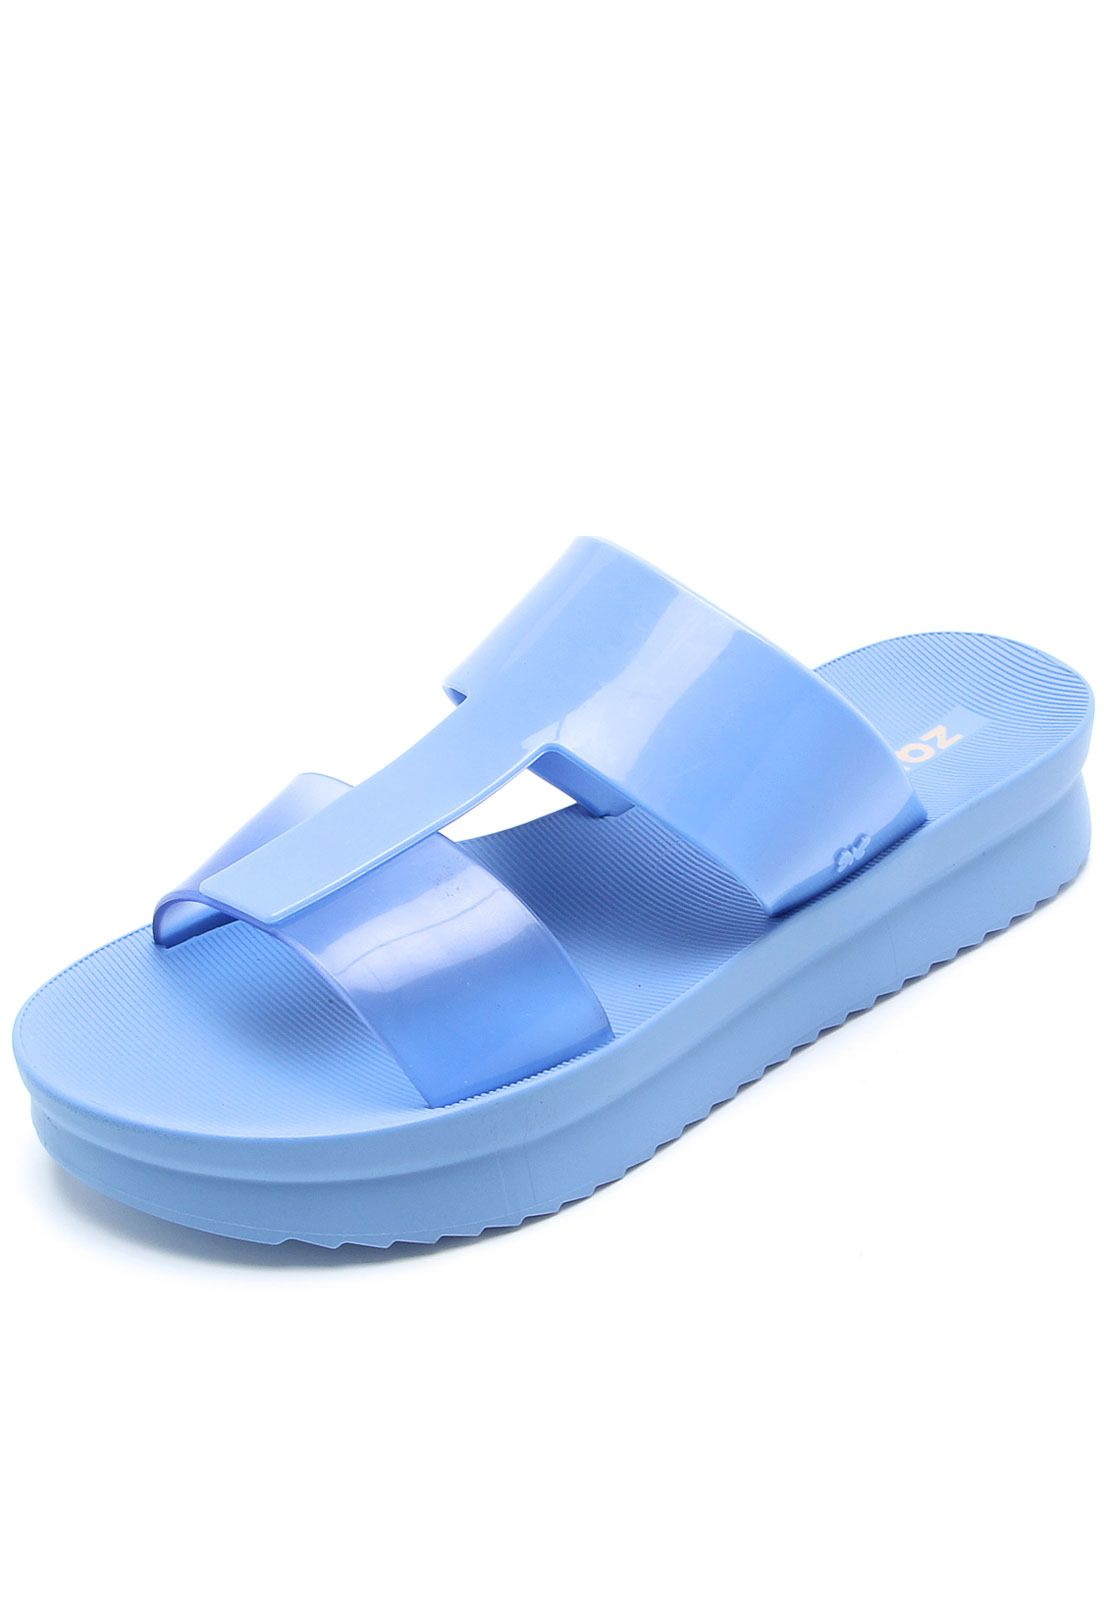 7c88d3ee8 Rasteira Zaxy Tiras Azul em 2019 | Products | Shoes, Casual e Sandals